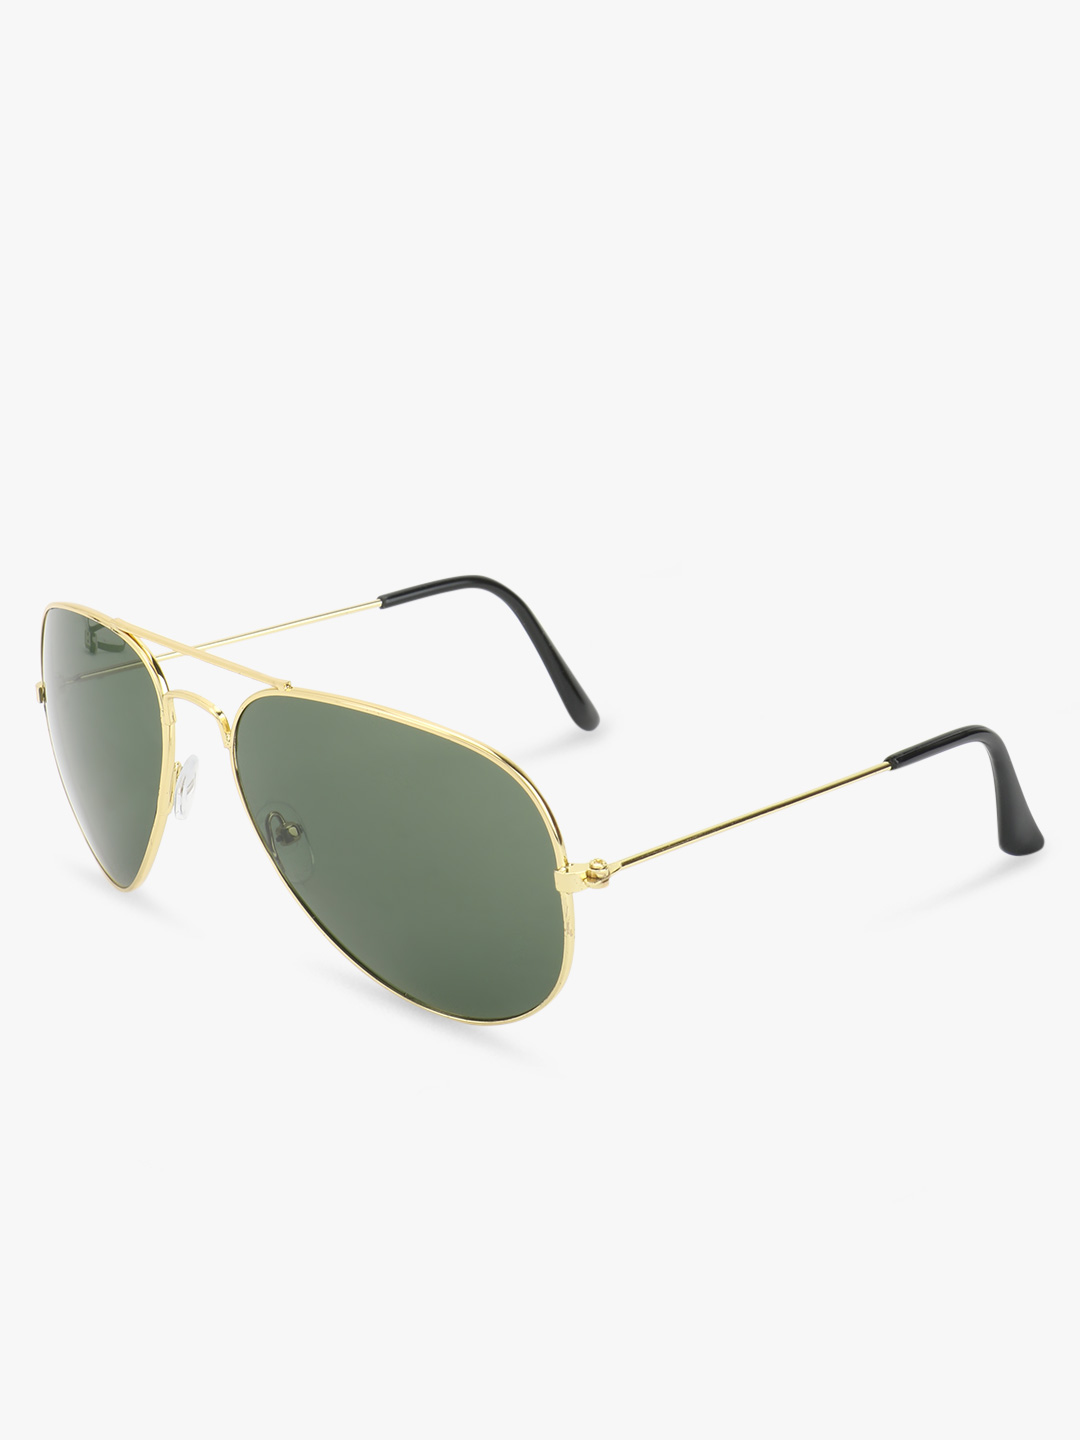 KOOVS Golden Pilot Sunglasses 1